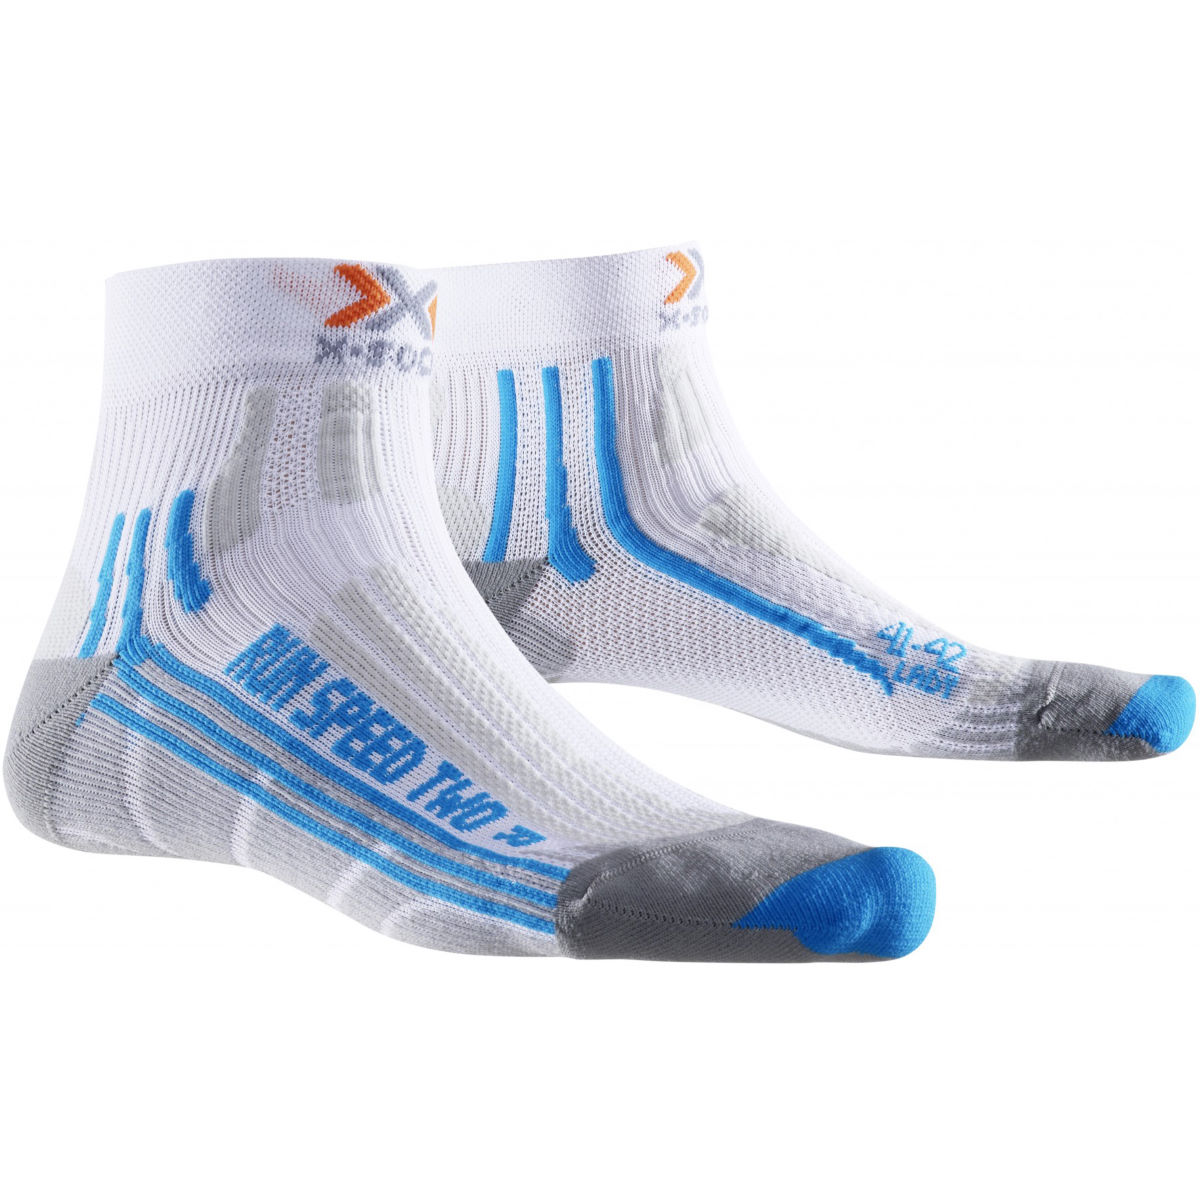 Chaussettes Femme X-Socks Run Speed Two - 4-5 UK White/Turquoise